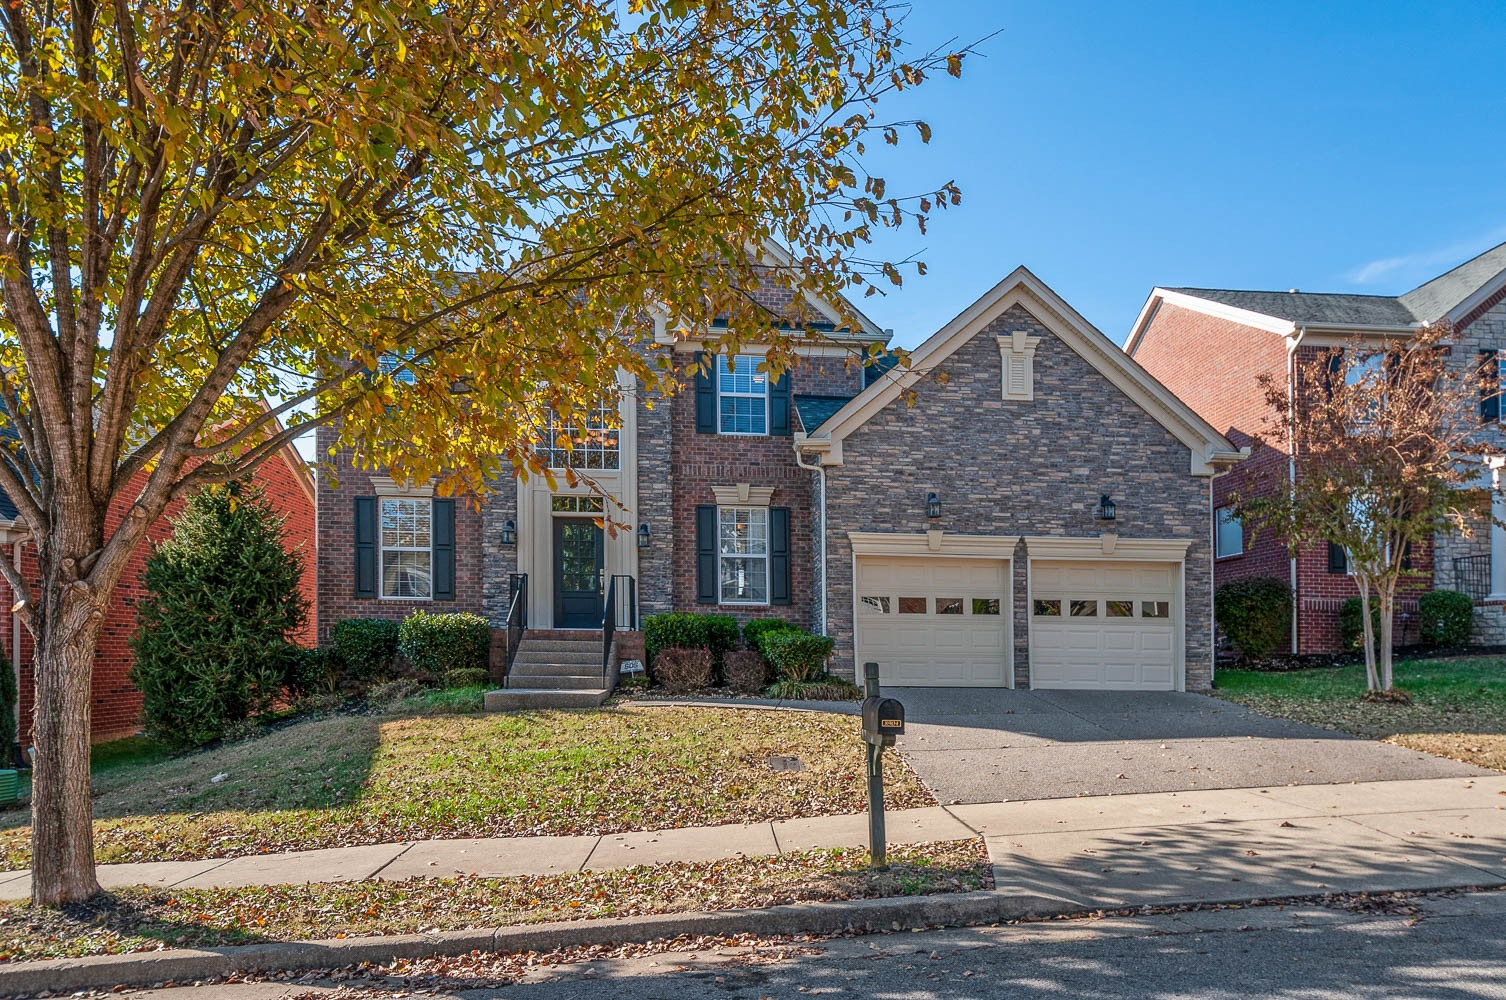 8904 Macauley Ln Property Photo - Nolensville, TN real estate listing